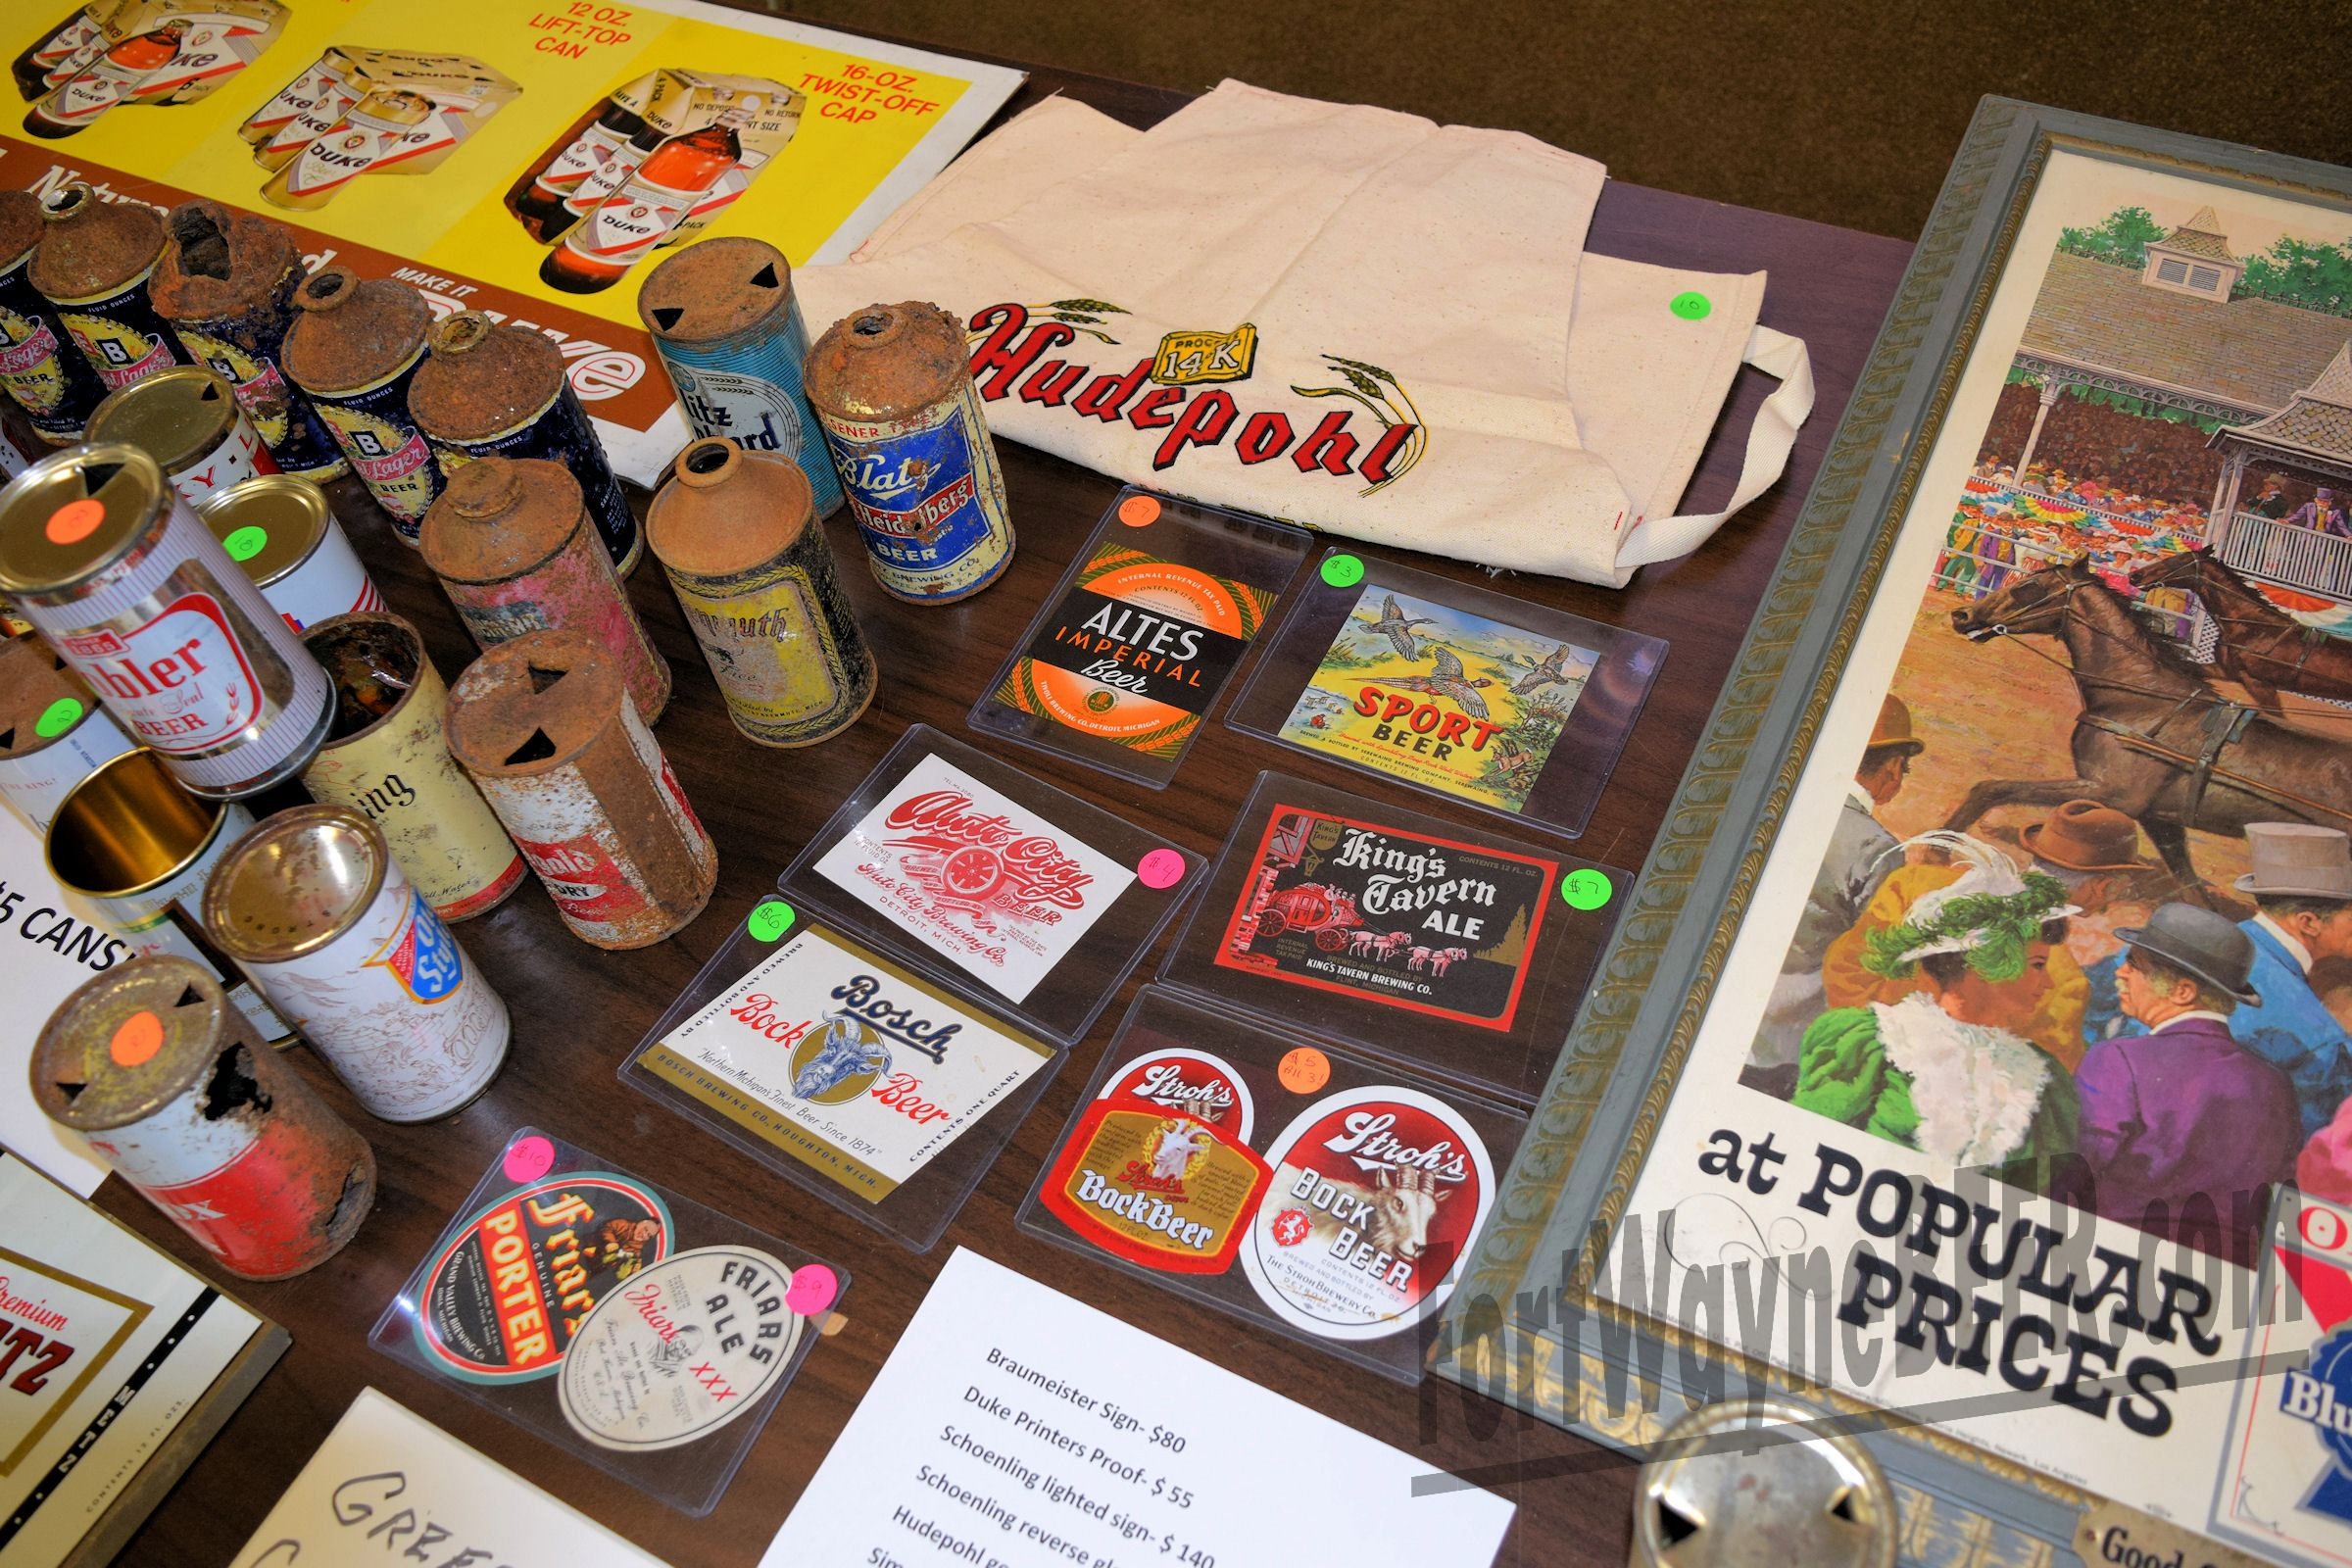 2016 Fort Wayne Brewery Collectibles Show37.JPG